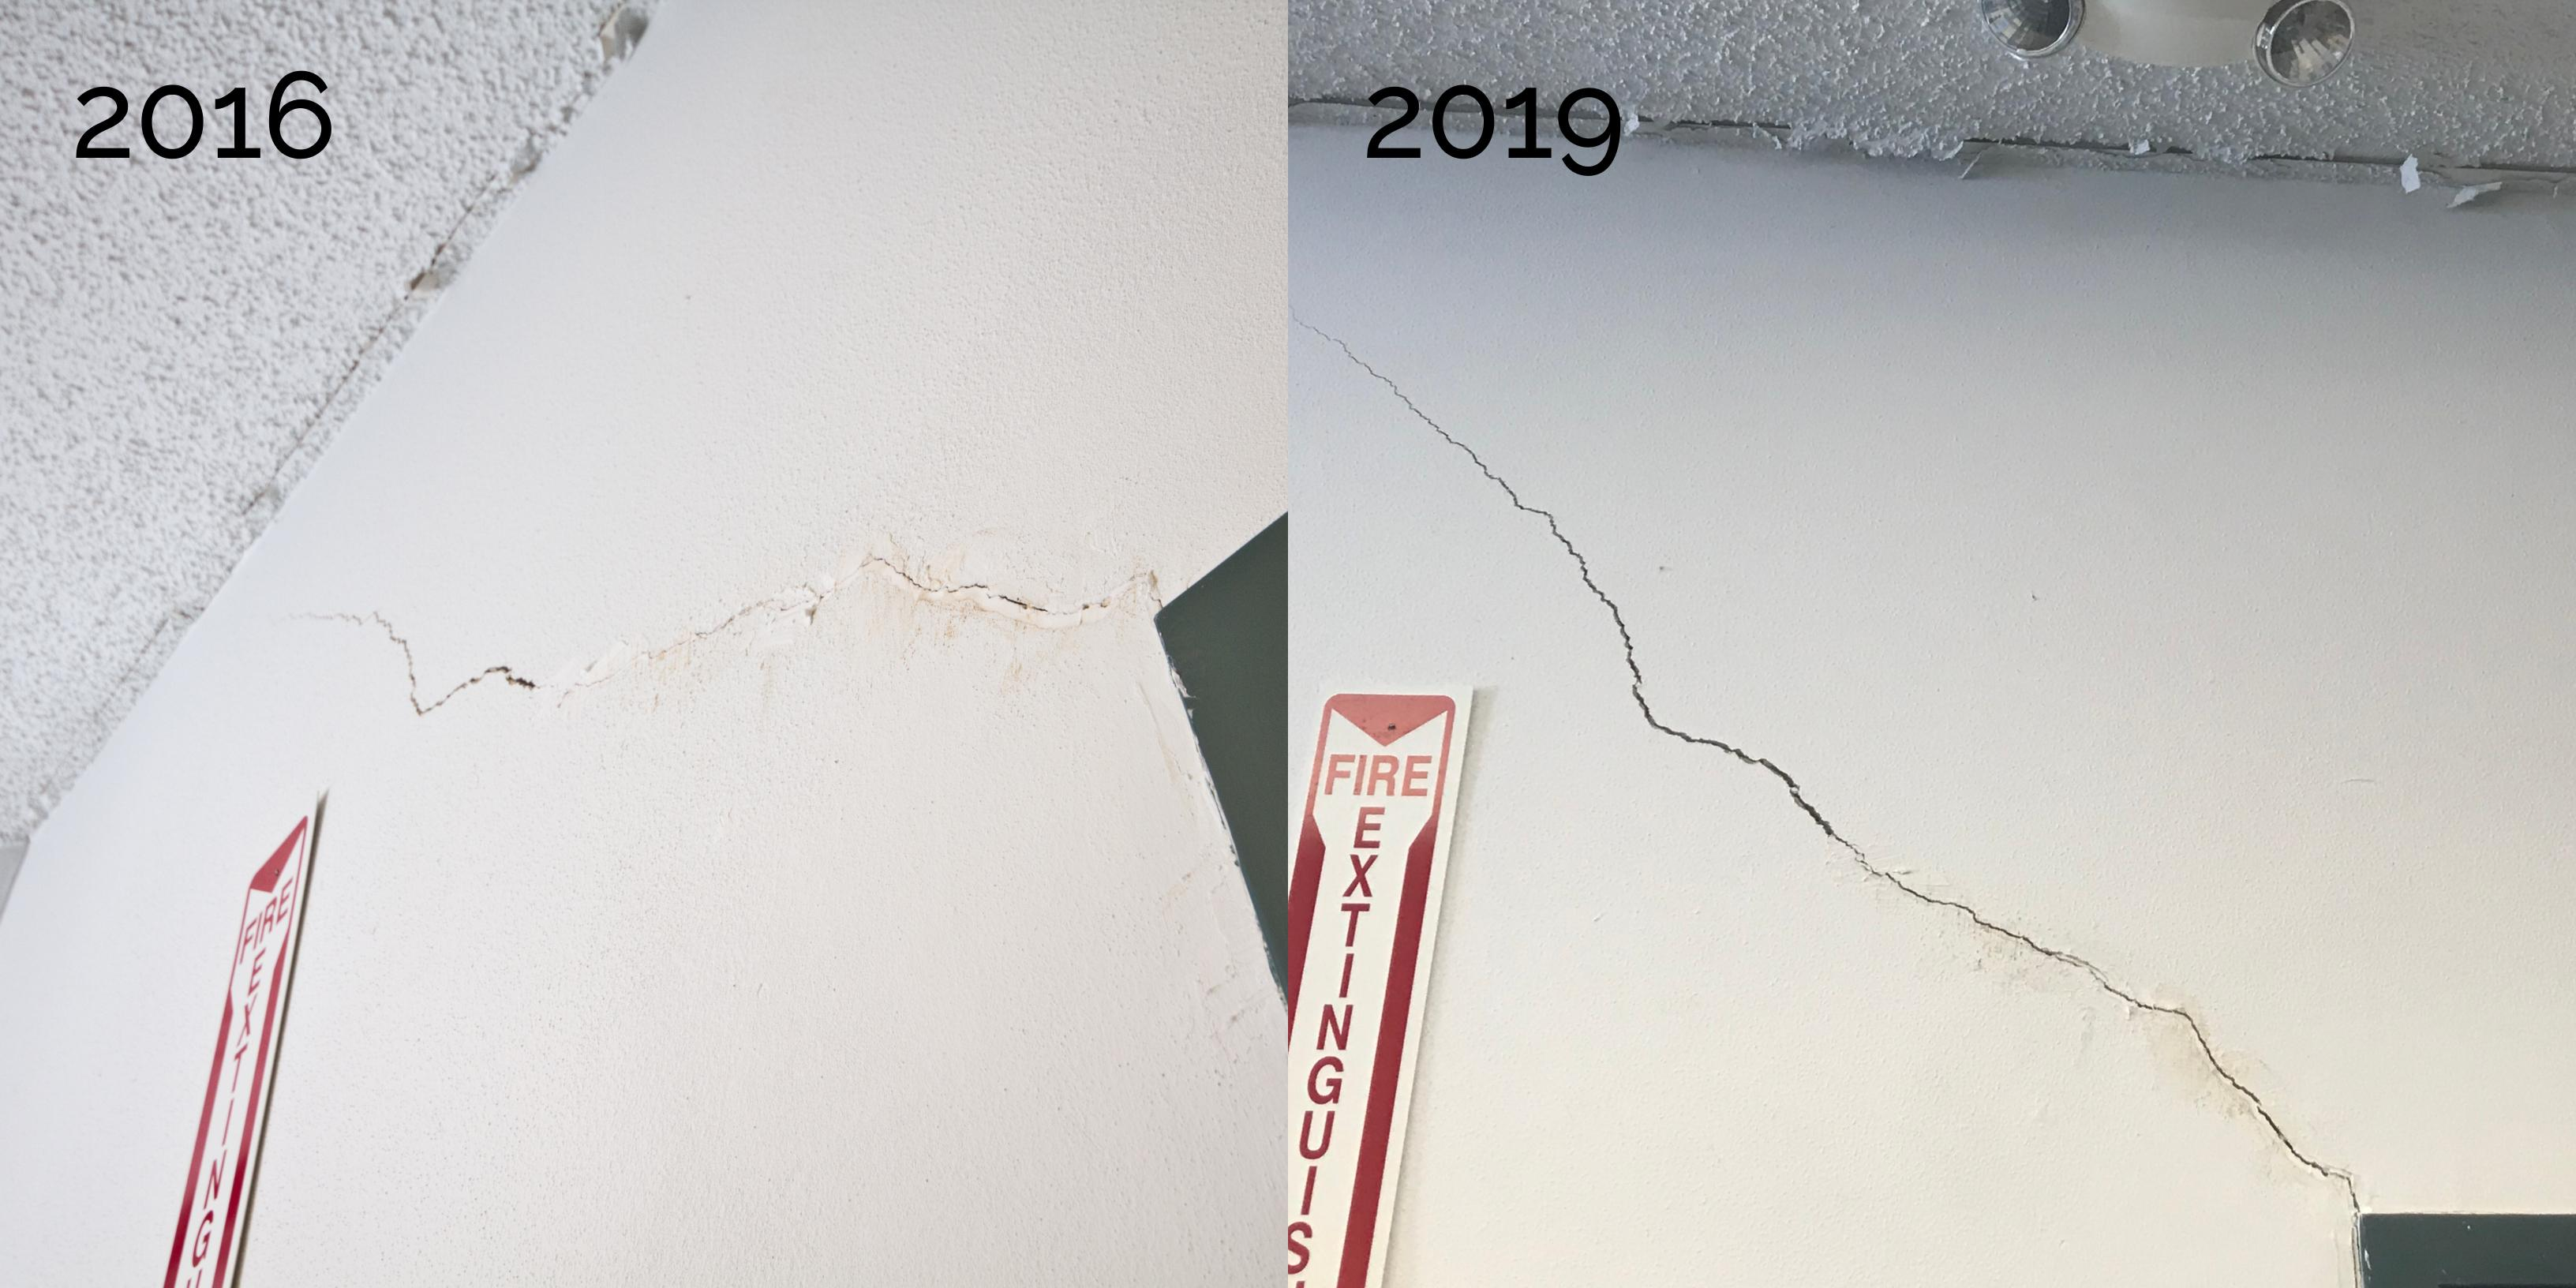 Cracks in wall, 2016 and 2019